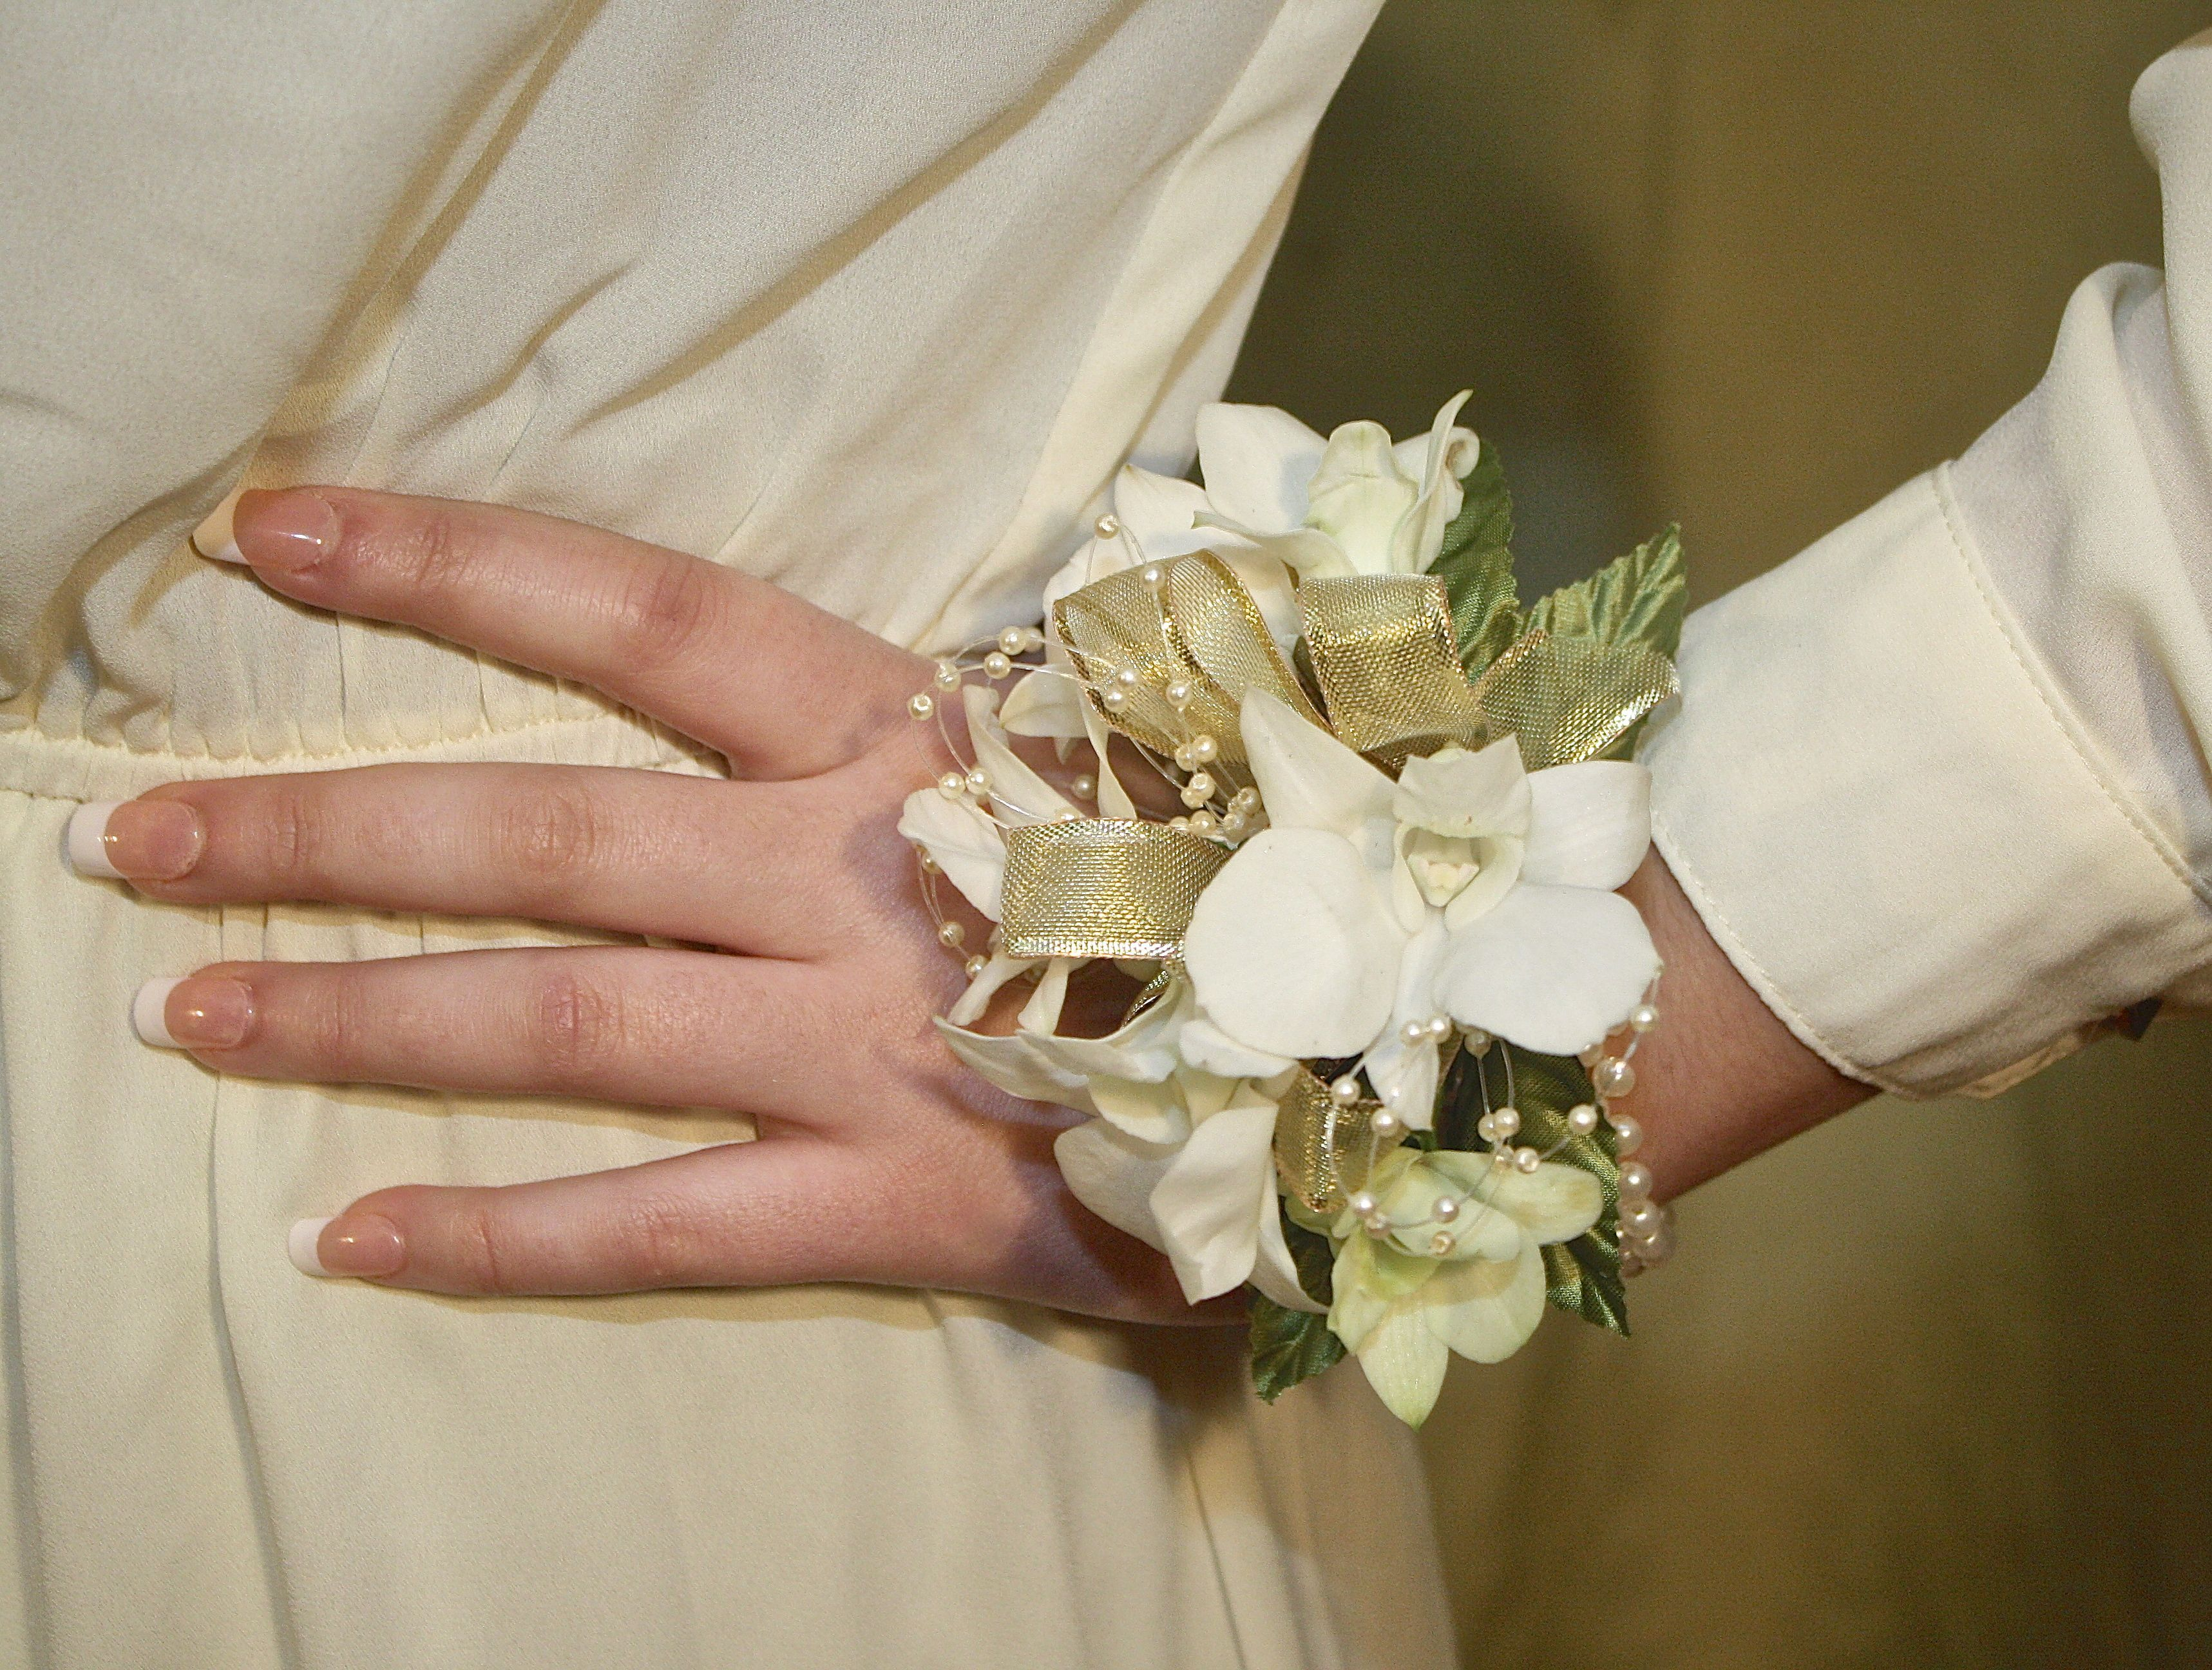 Prom flowers beautiful wrist corsages white and gold flower prom flowers beautiful wrist corsages white and gold flower corsage westchester new york bedford village florist mightylinksfo